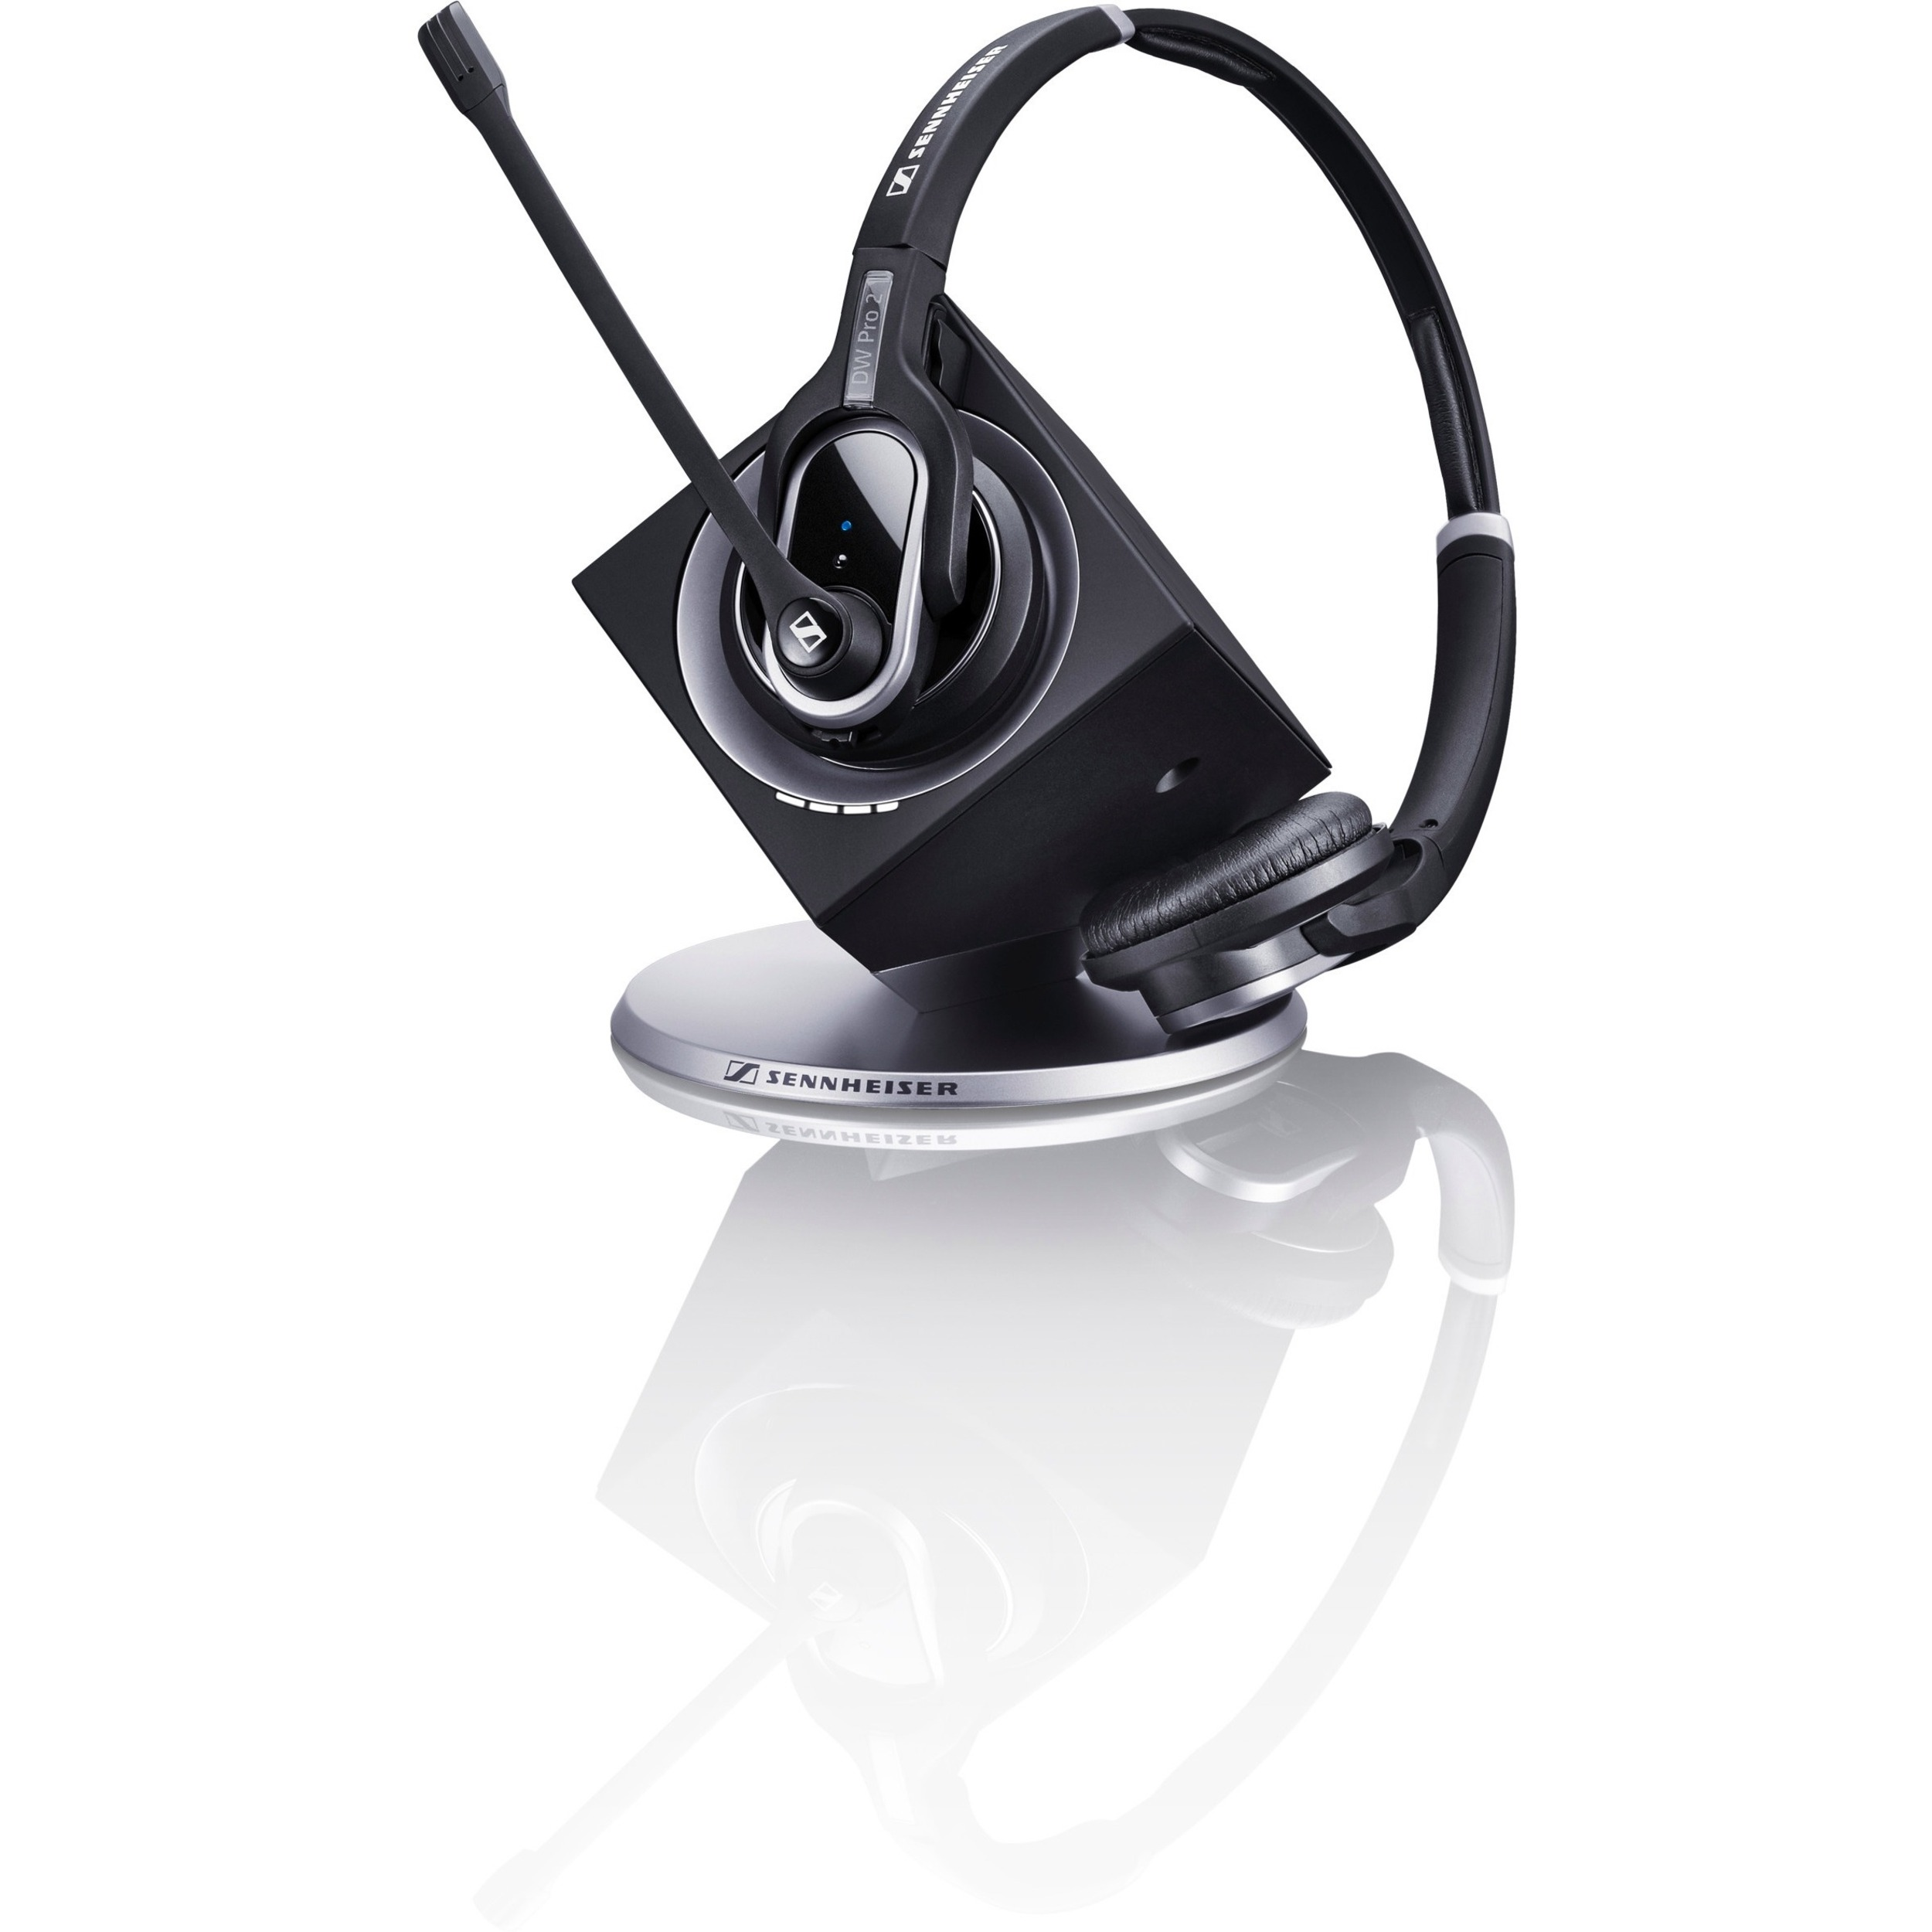 Sennheiser DW Pro2 USB Wireless DECT Stereo Headset - Over-the-head, Over-the-ear - Supra-aural